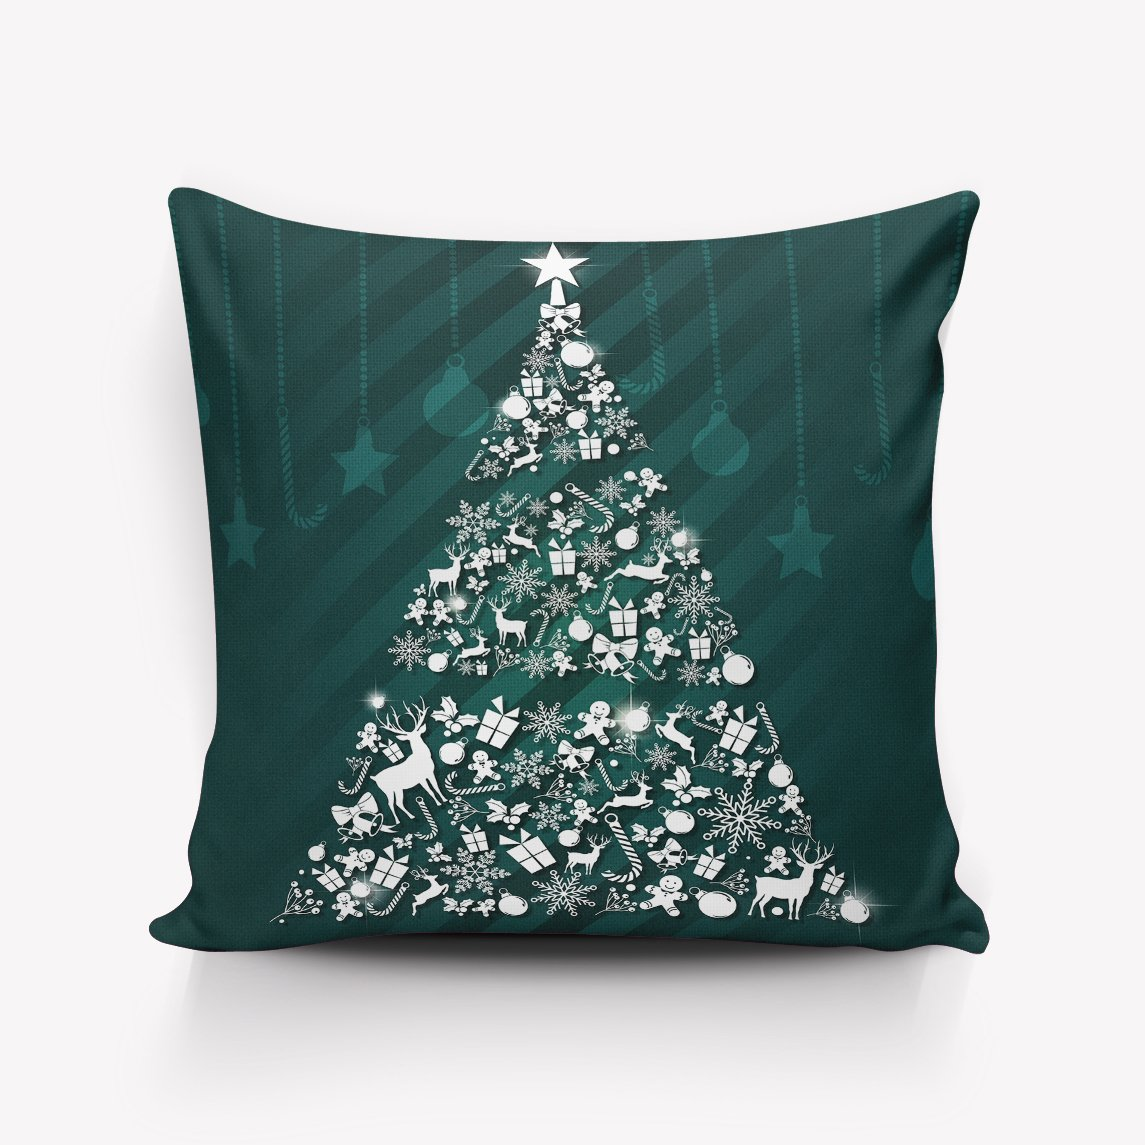 Decorative Rustic Old Barn Wood Art,merry christmas gifts Pillowcases Square Cushion Cover for Home Decor 20x20inch Two sides